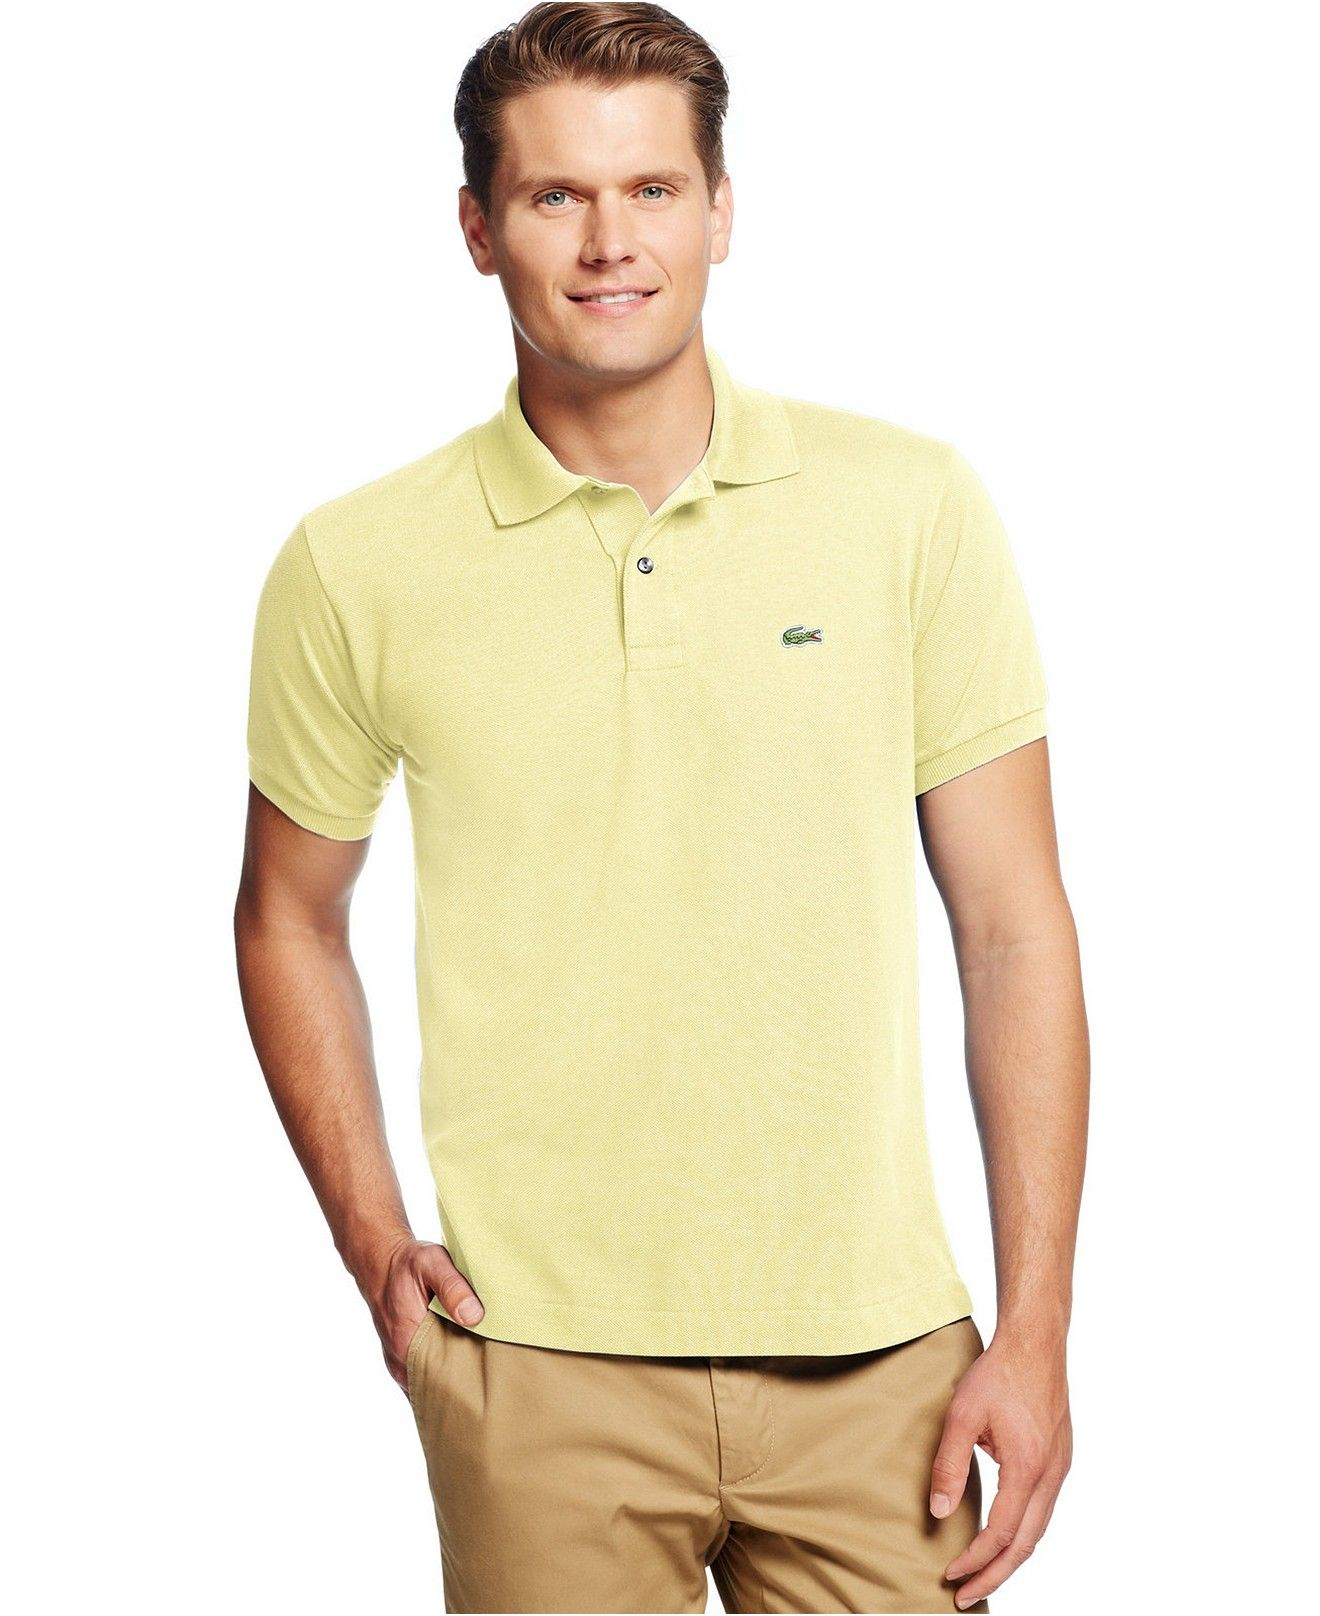 0af5a14f15b3 Lacoste Classic Pique Polo - Polos - Men - Macy s